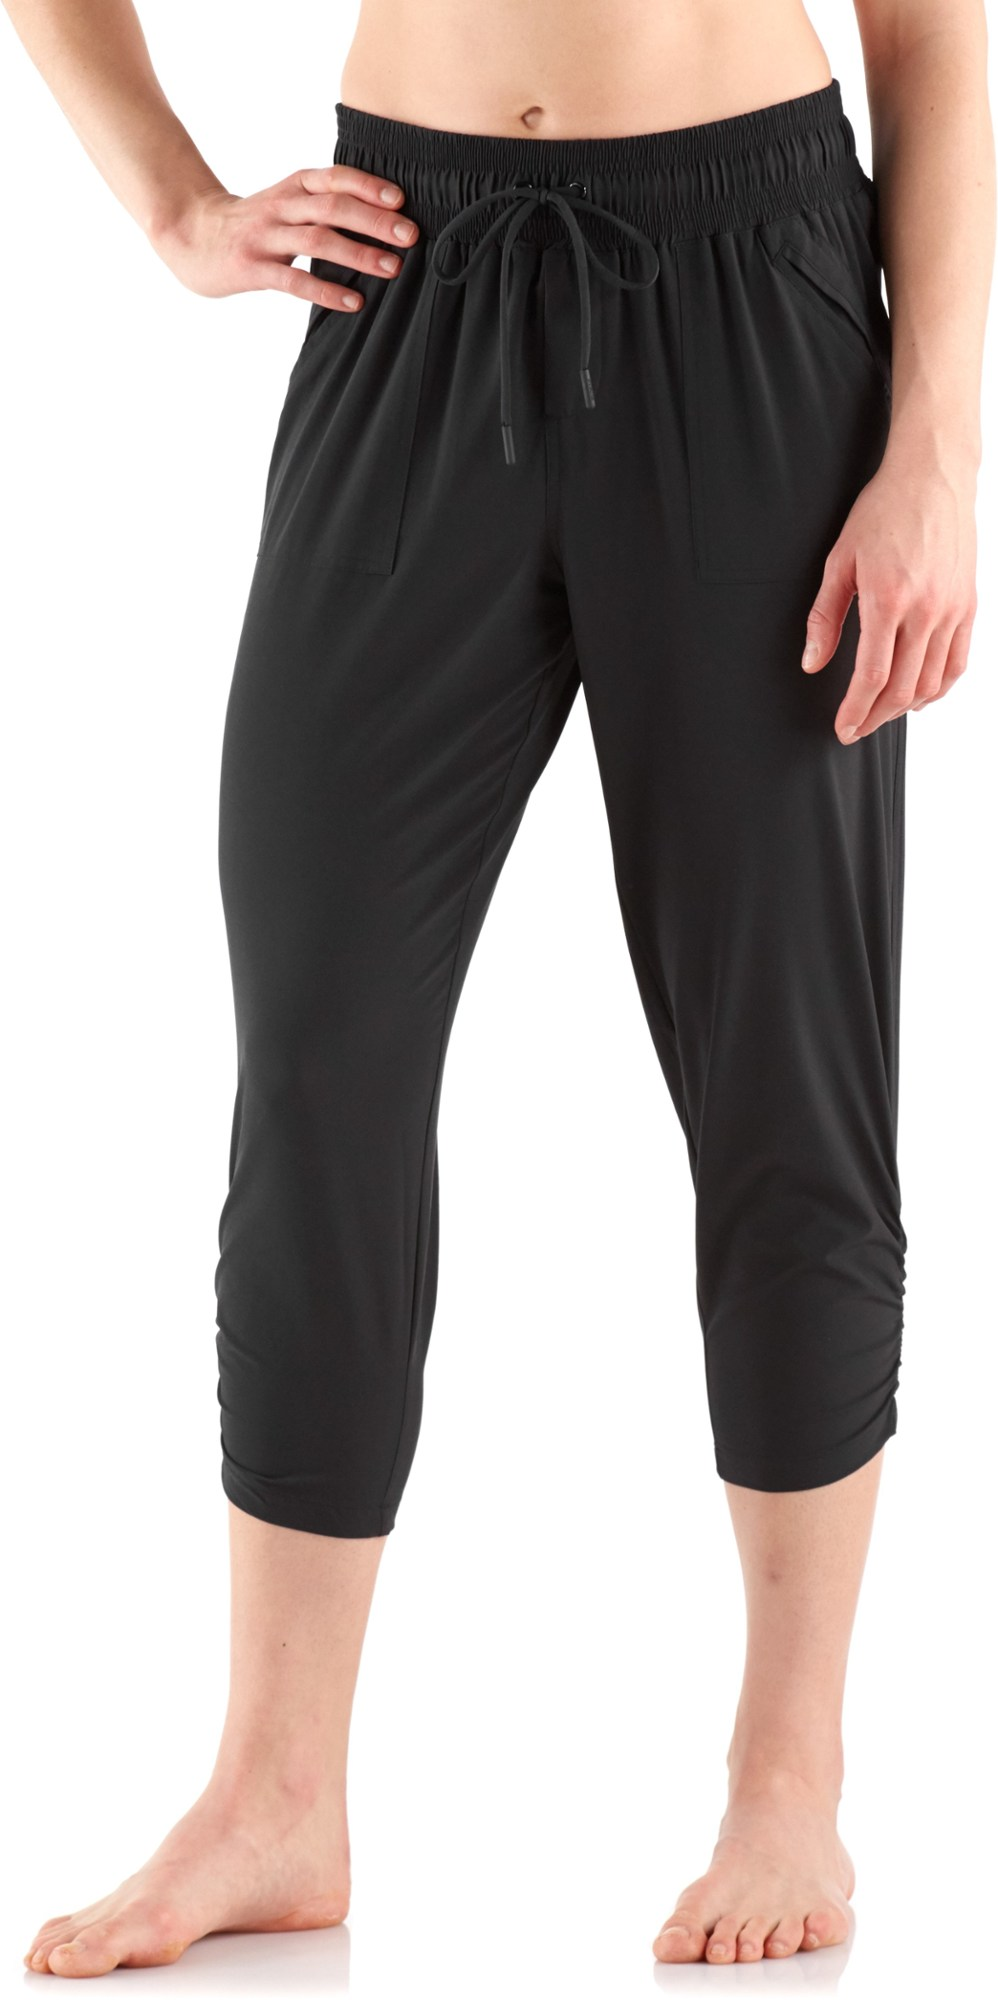 prAna Midtown Capri Leggings - Women's